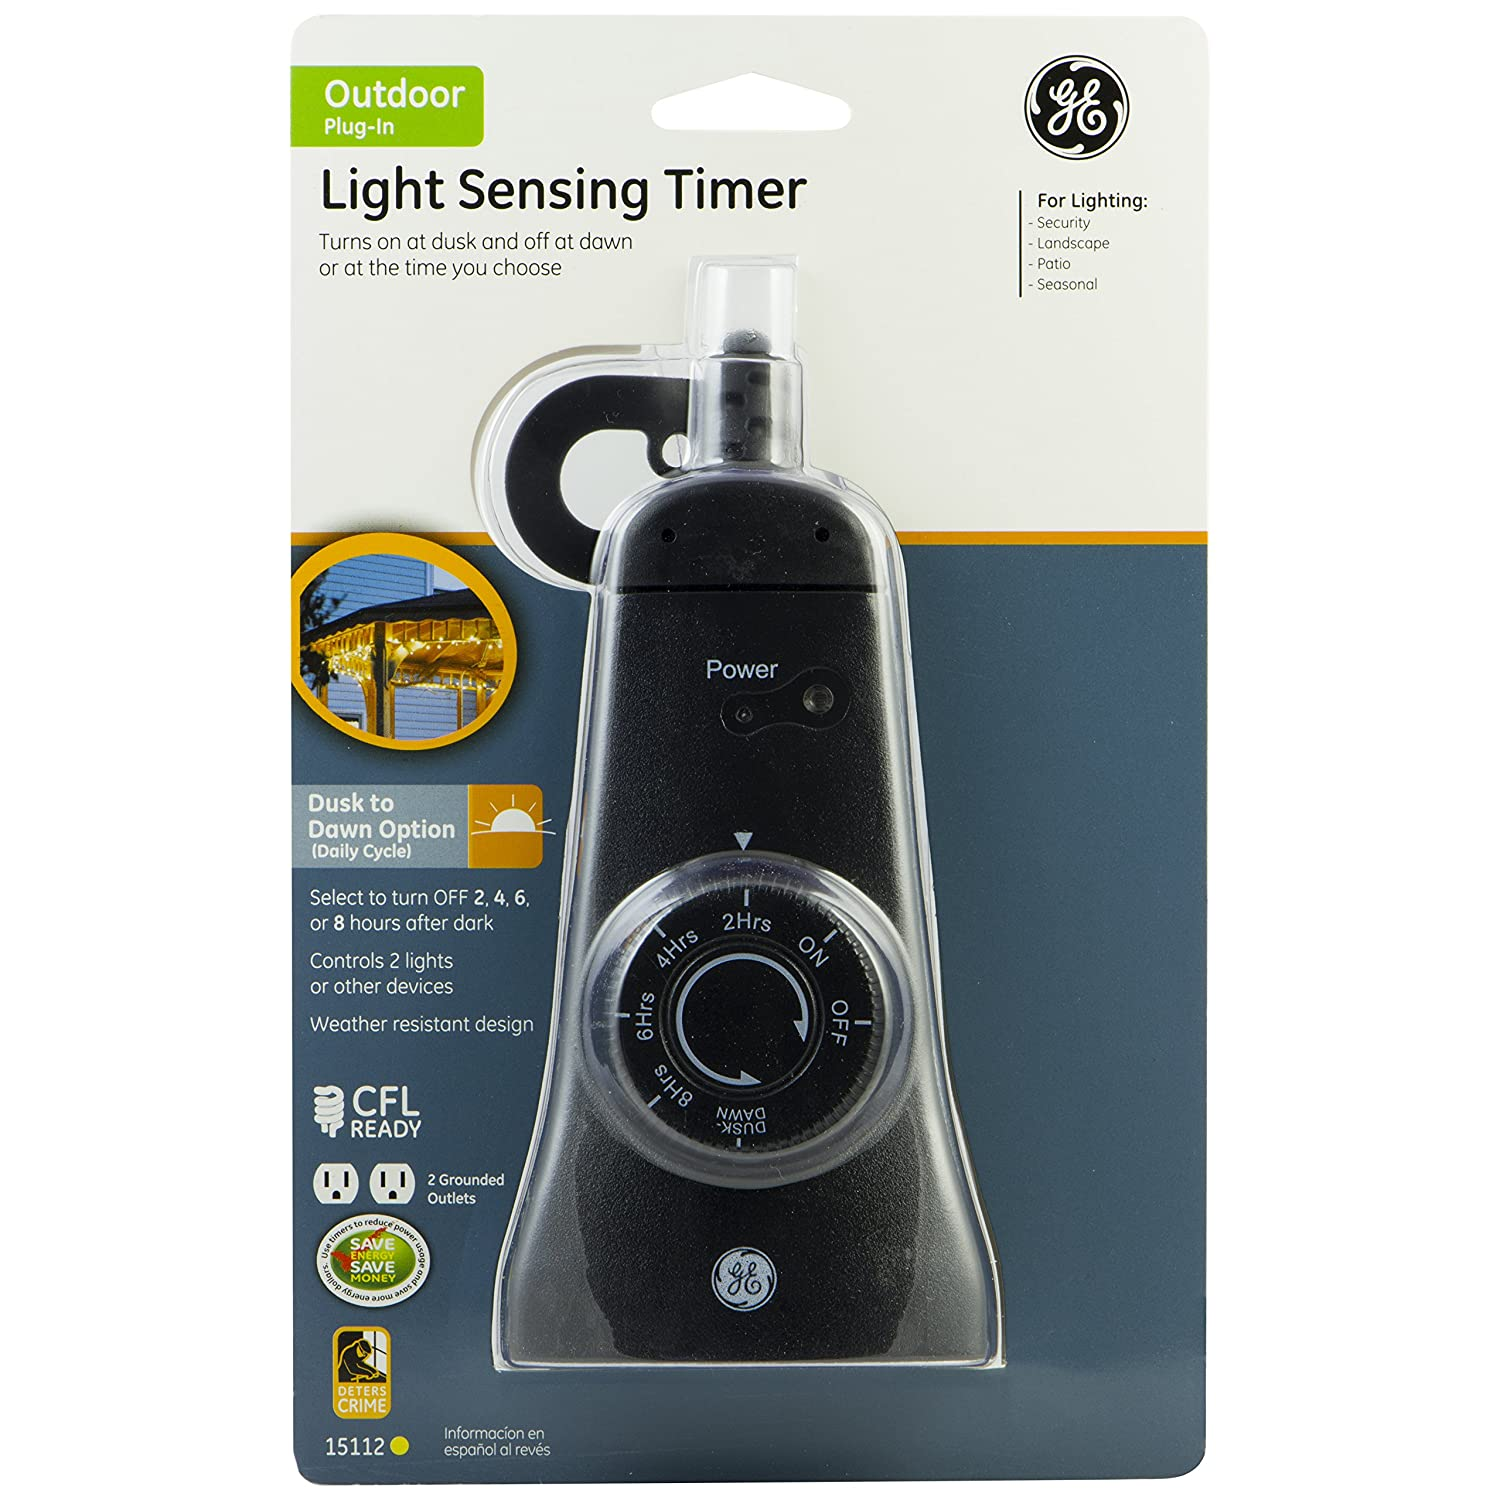 Troubleshooting Dead Outlets The Family Handyman Ge Outdoor 24 Hour Photoelectric Dusk To Dawn Light Sensing Timer Grounded 2 Outlet Black 15112 Electronics